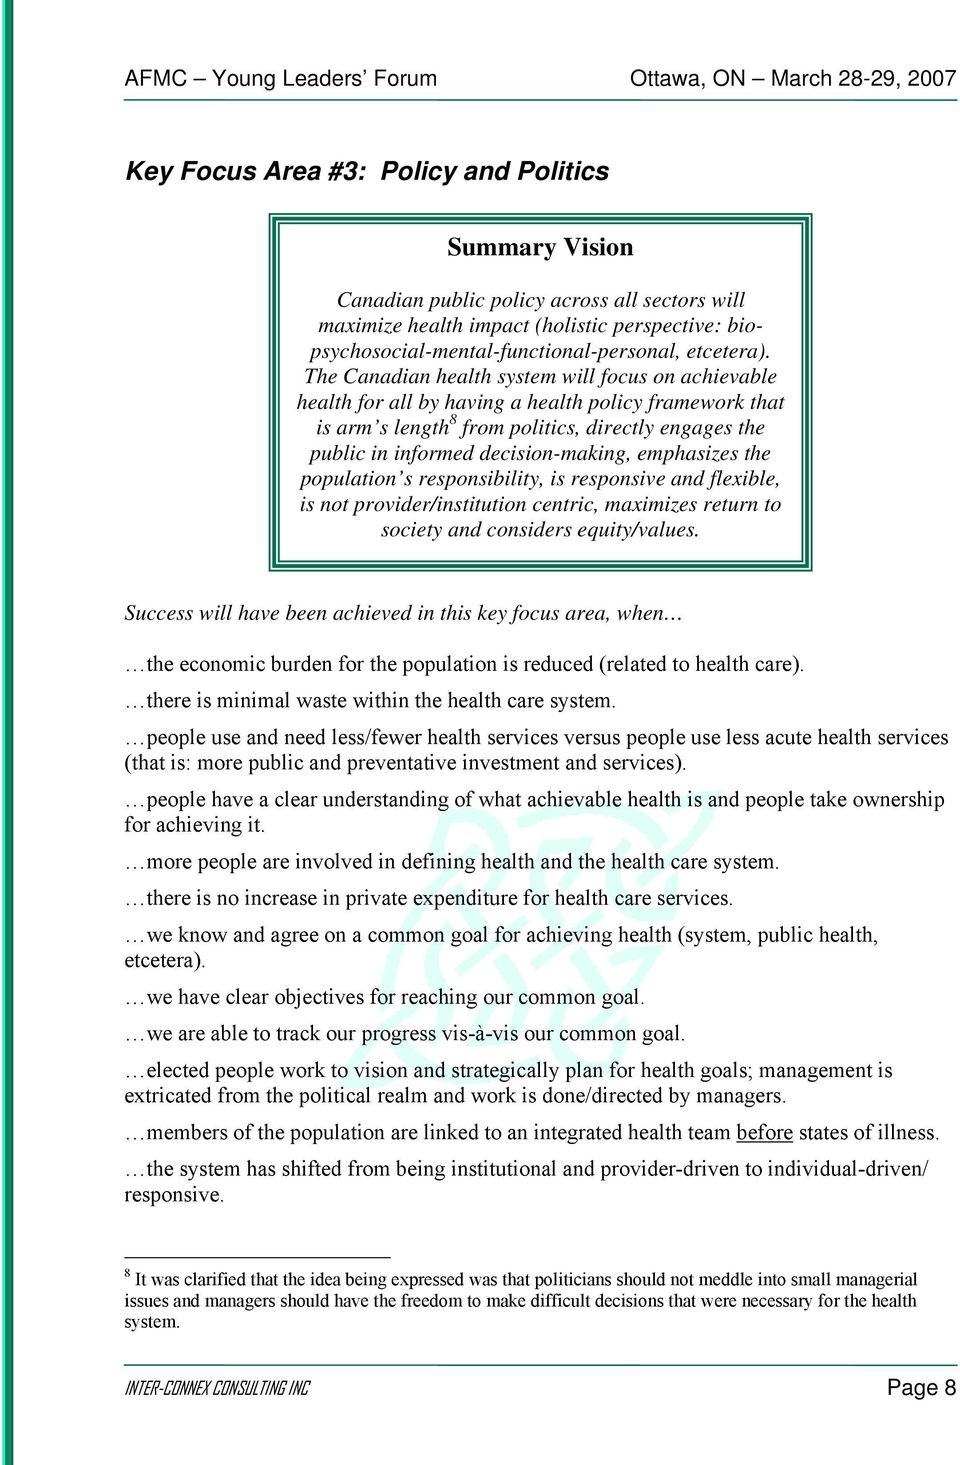 The Canadian health system will focus on achievable health for all by having a health policy framework that is arm s length 8 from politics, directly engages the public in informed decision-making,